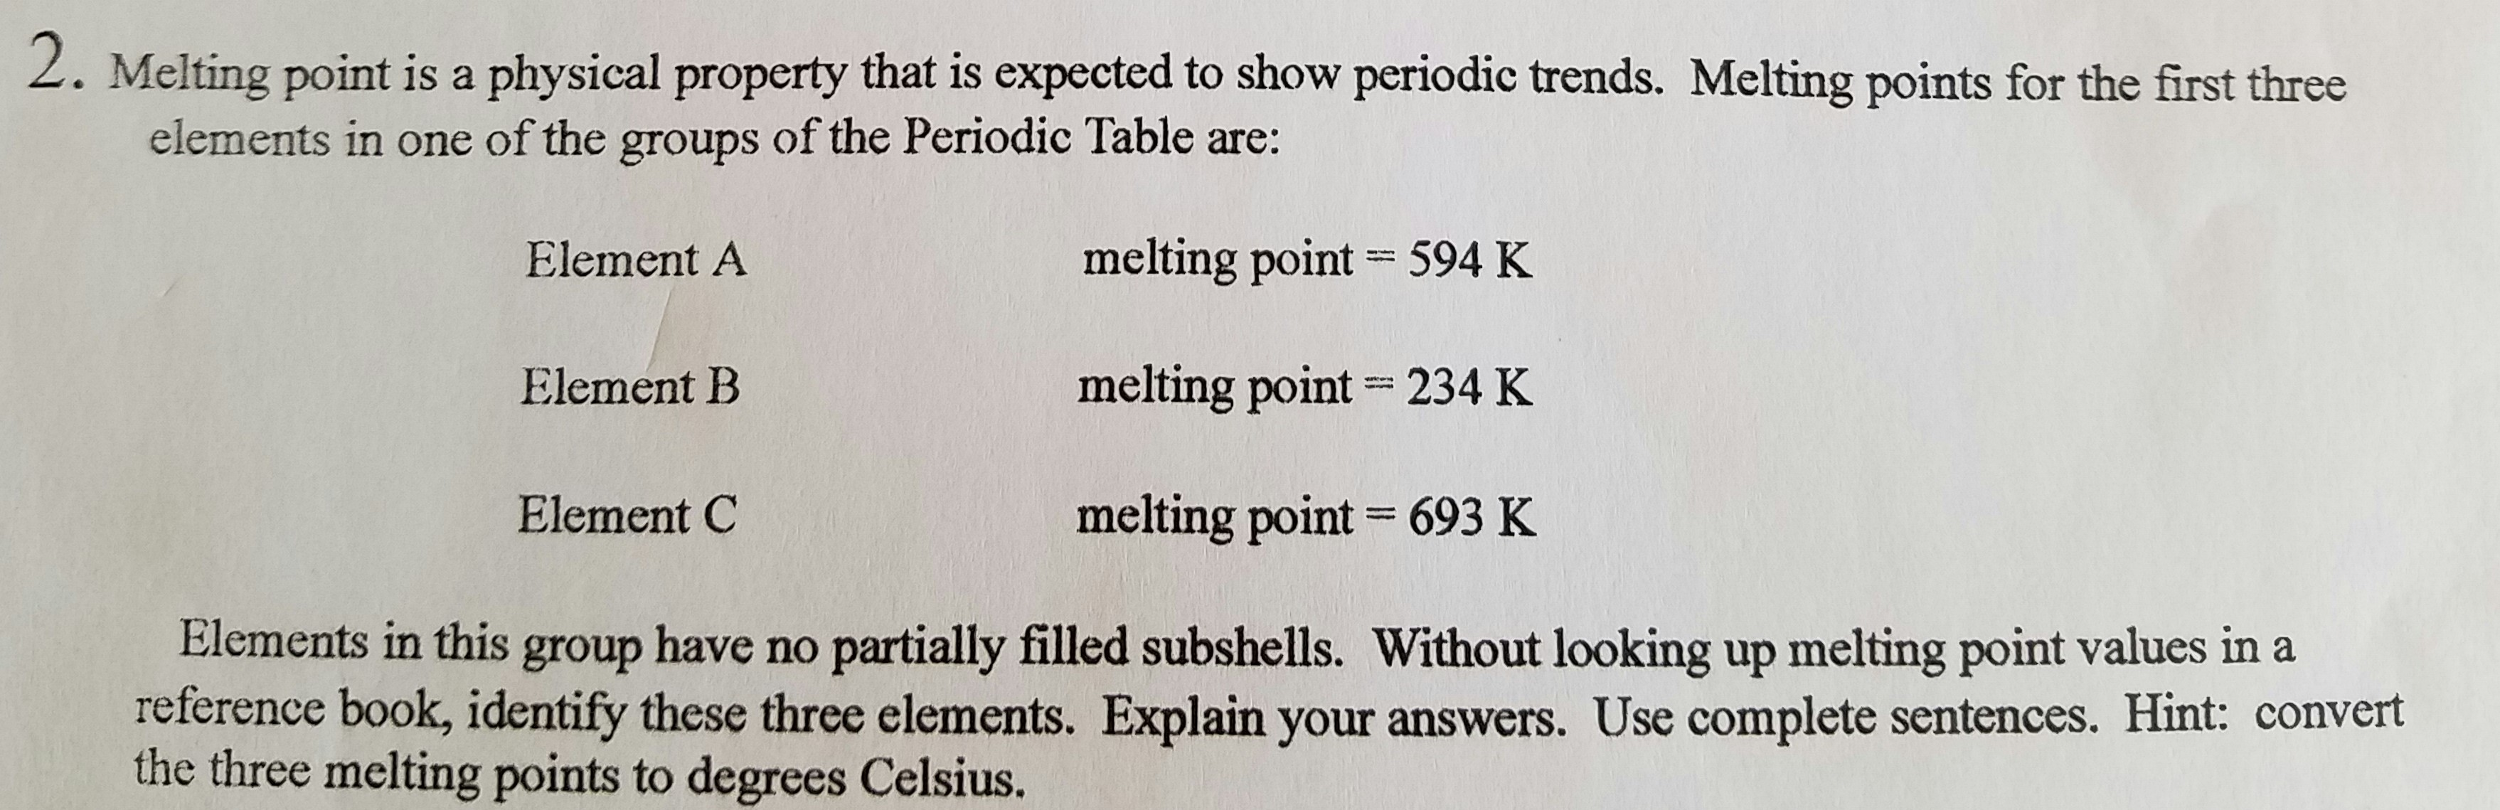 Melting Point Is A Physical Property That Is Expec